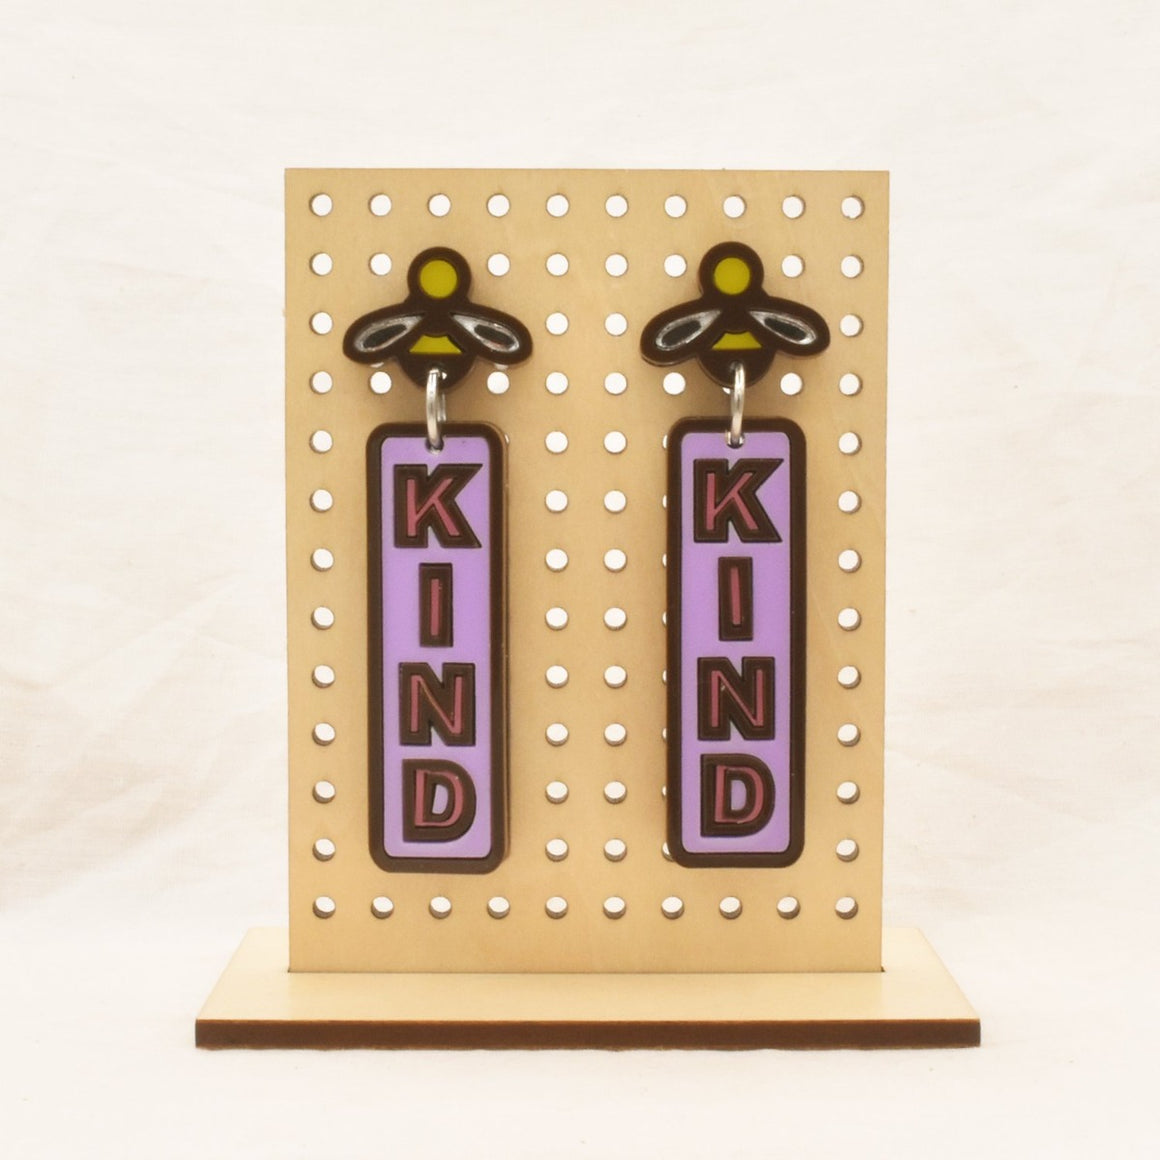 Image featuring a tanned wood stand holding two graphically illustrated earrings both featuring a bee on the top and then the word Kind